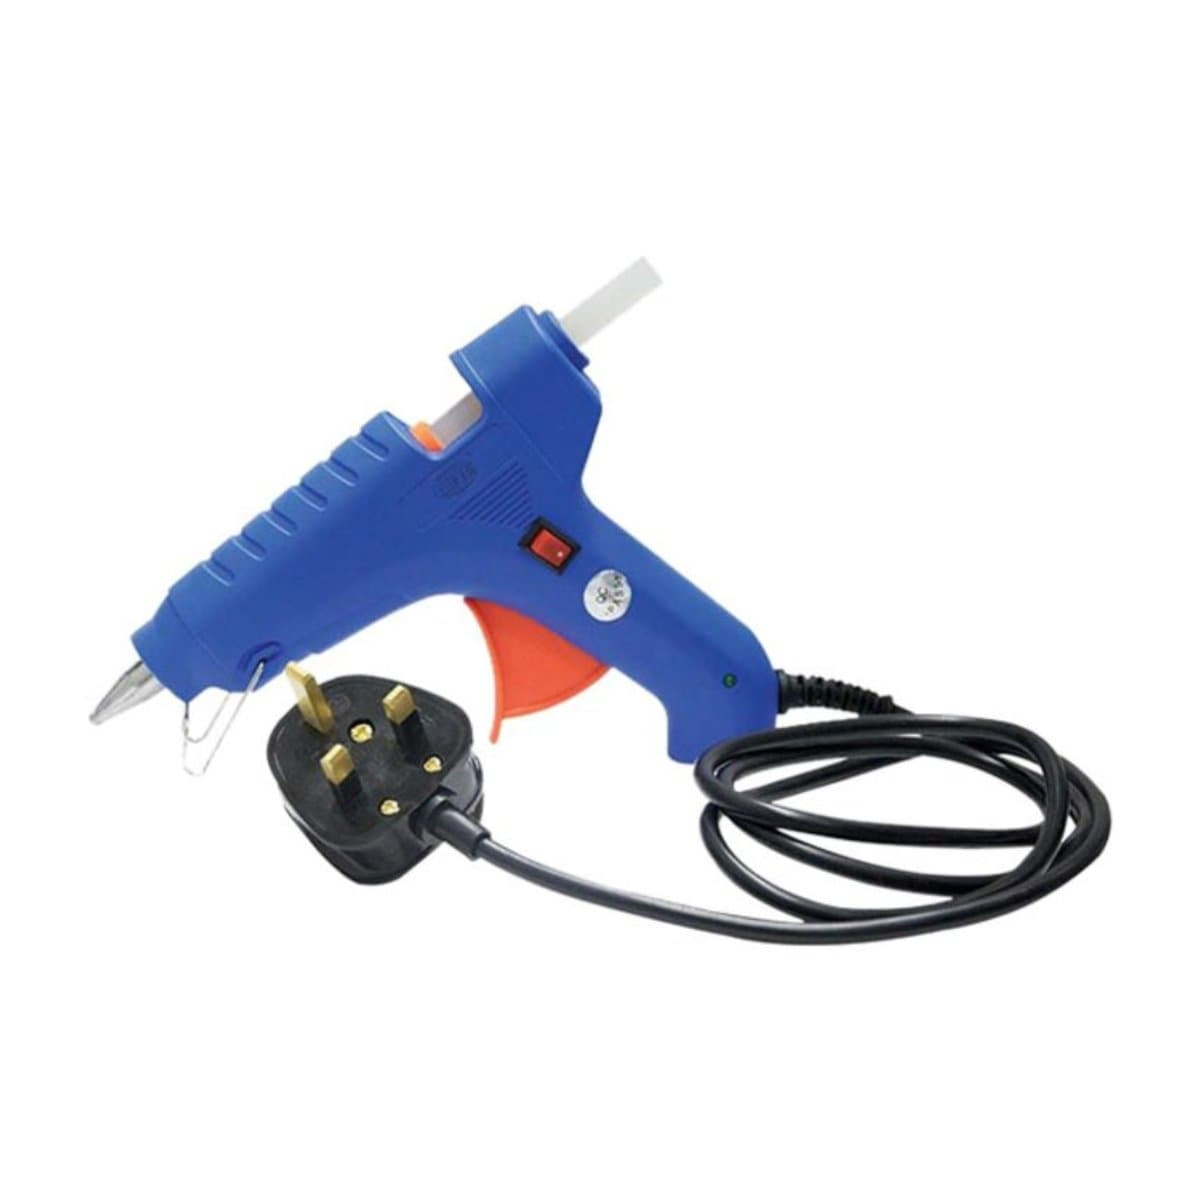 FIS Mini Glue Gun, 40Watt